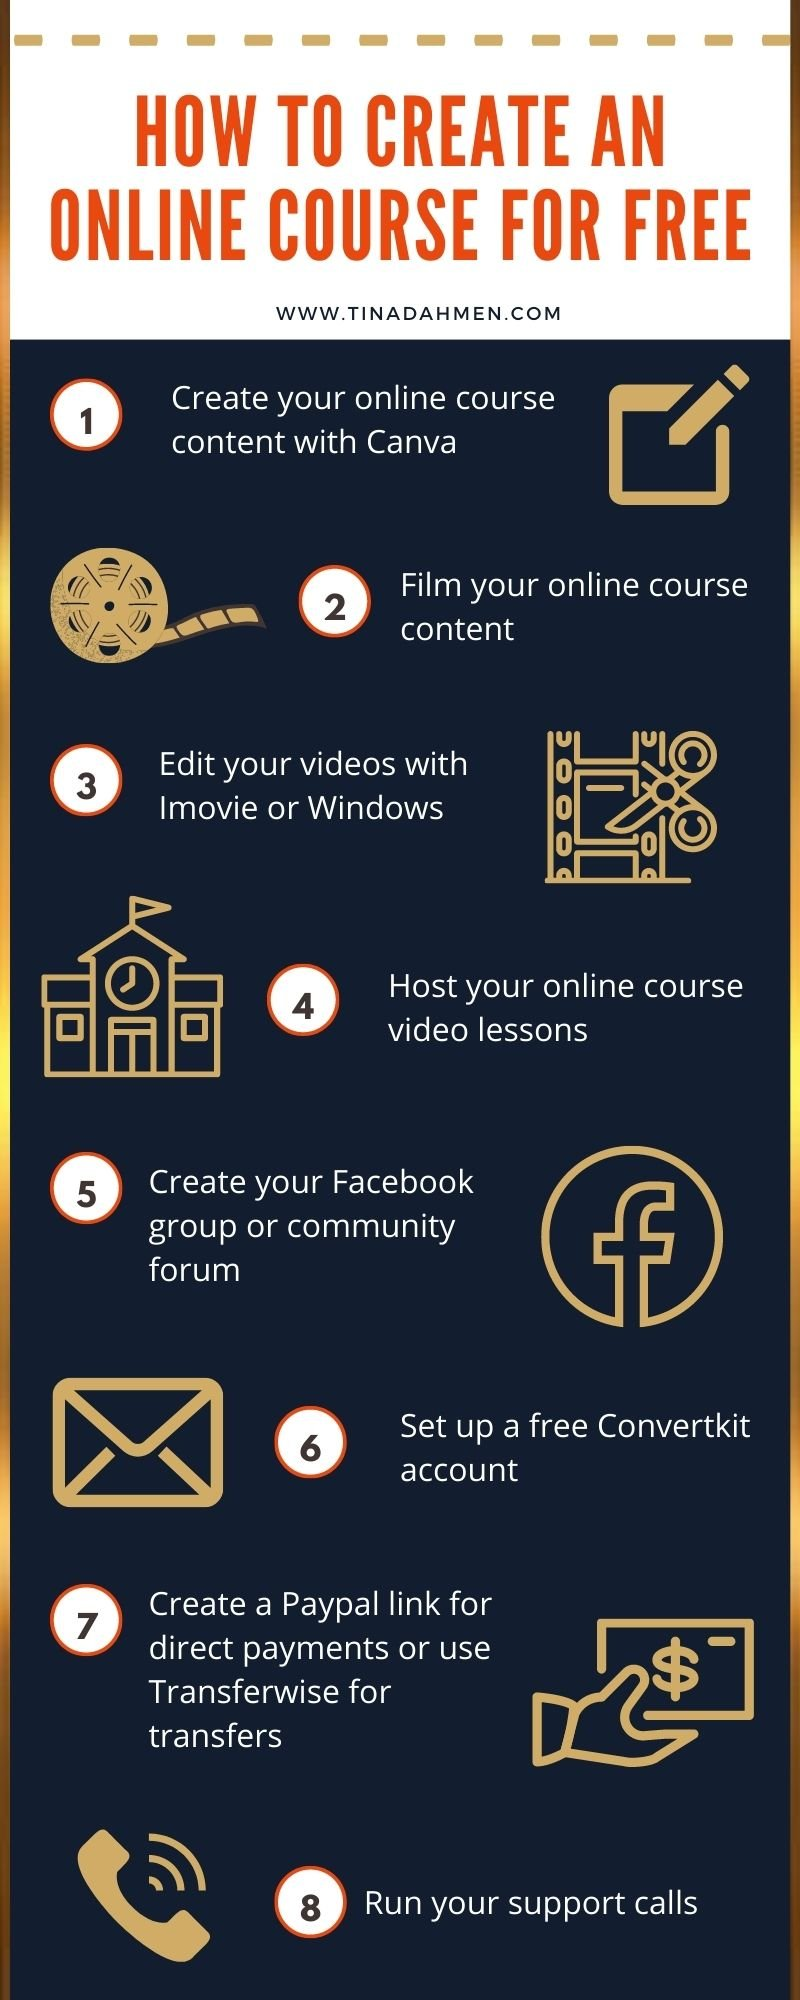 How to create an online course for free_1